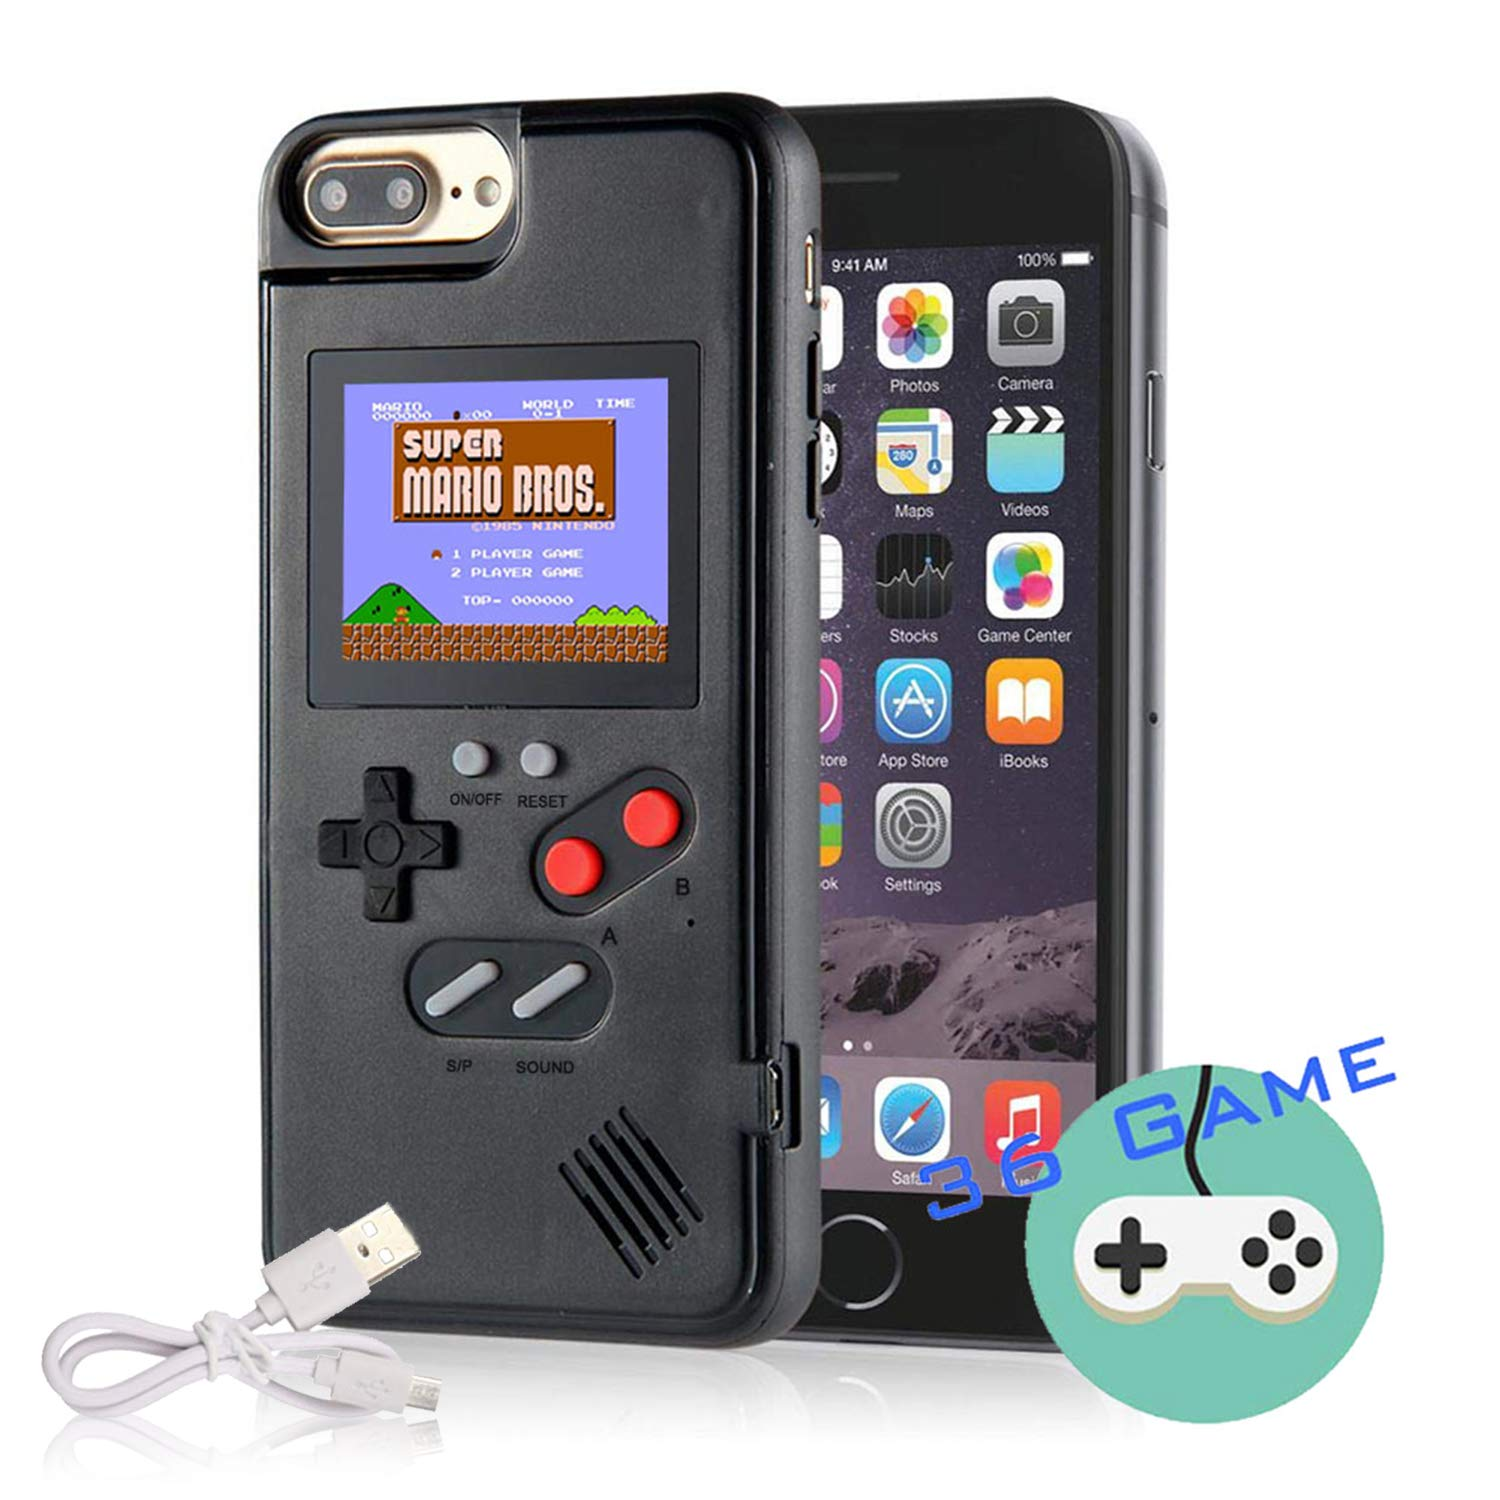 Autbye Gameboy Case for iPhone, Retro 3D Phone Case Game Console with 36 Classic Game, Color Display Shockproof Video Game Phone Case for iPhone 11 Pro (Black)